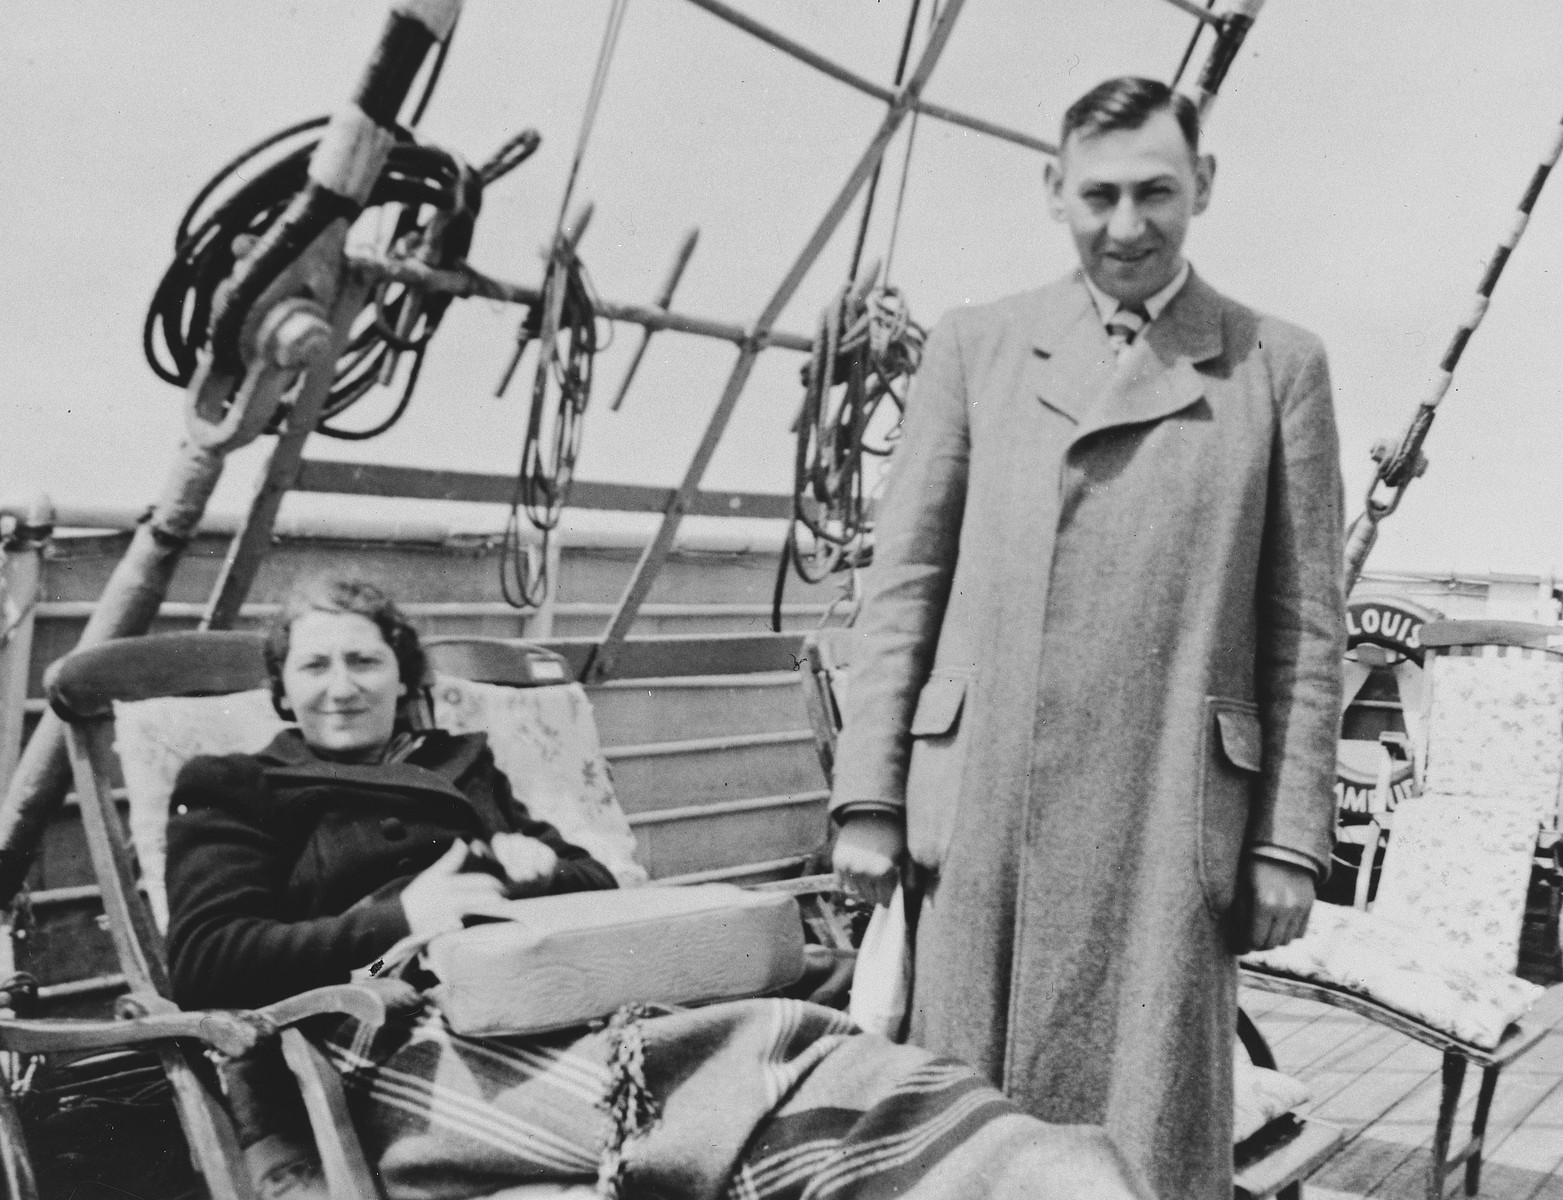 A female Jewish refugee relaxes on a deck chair while her husband stands next to her on the upper deck of the St. Louis.  Pictured are Ilse and Kurt Marcus.